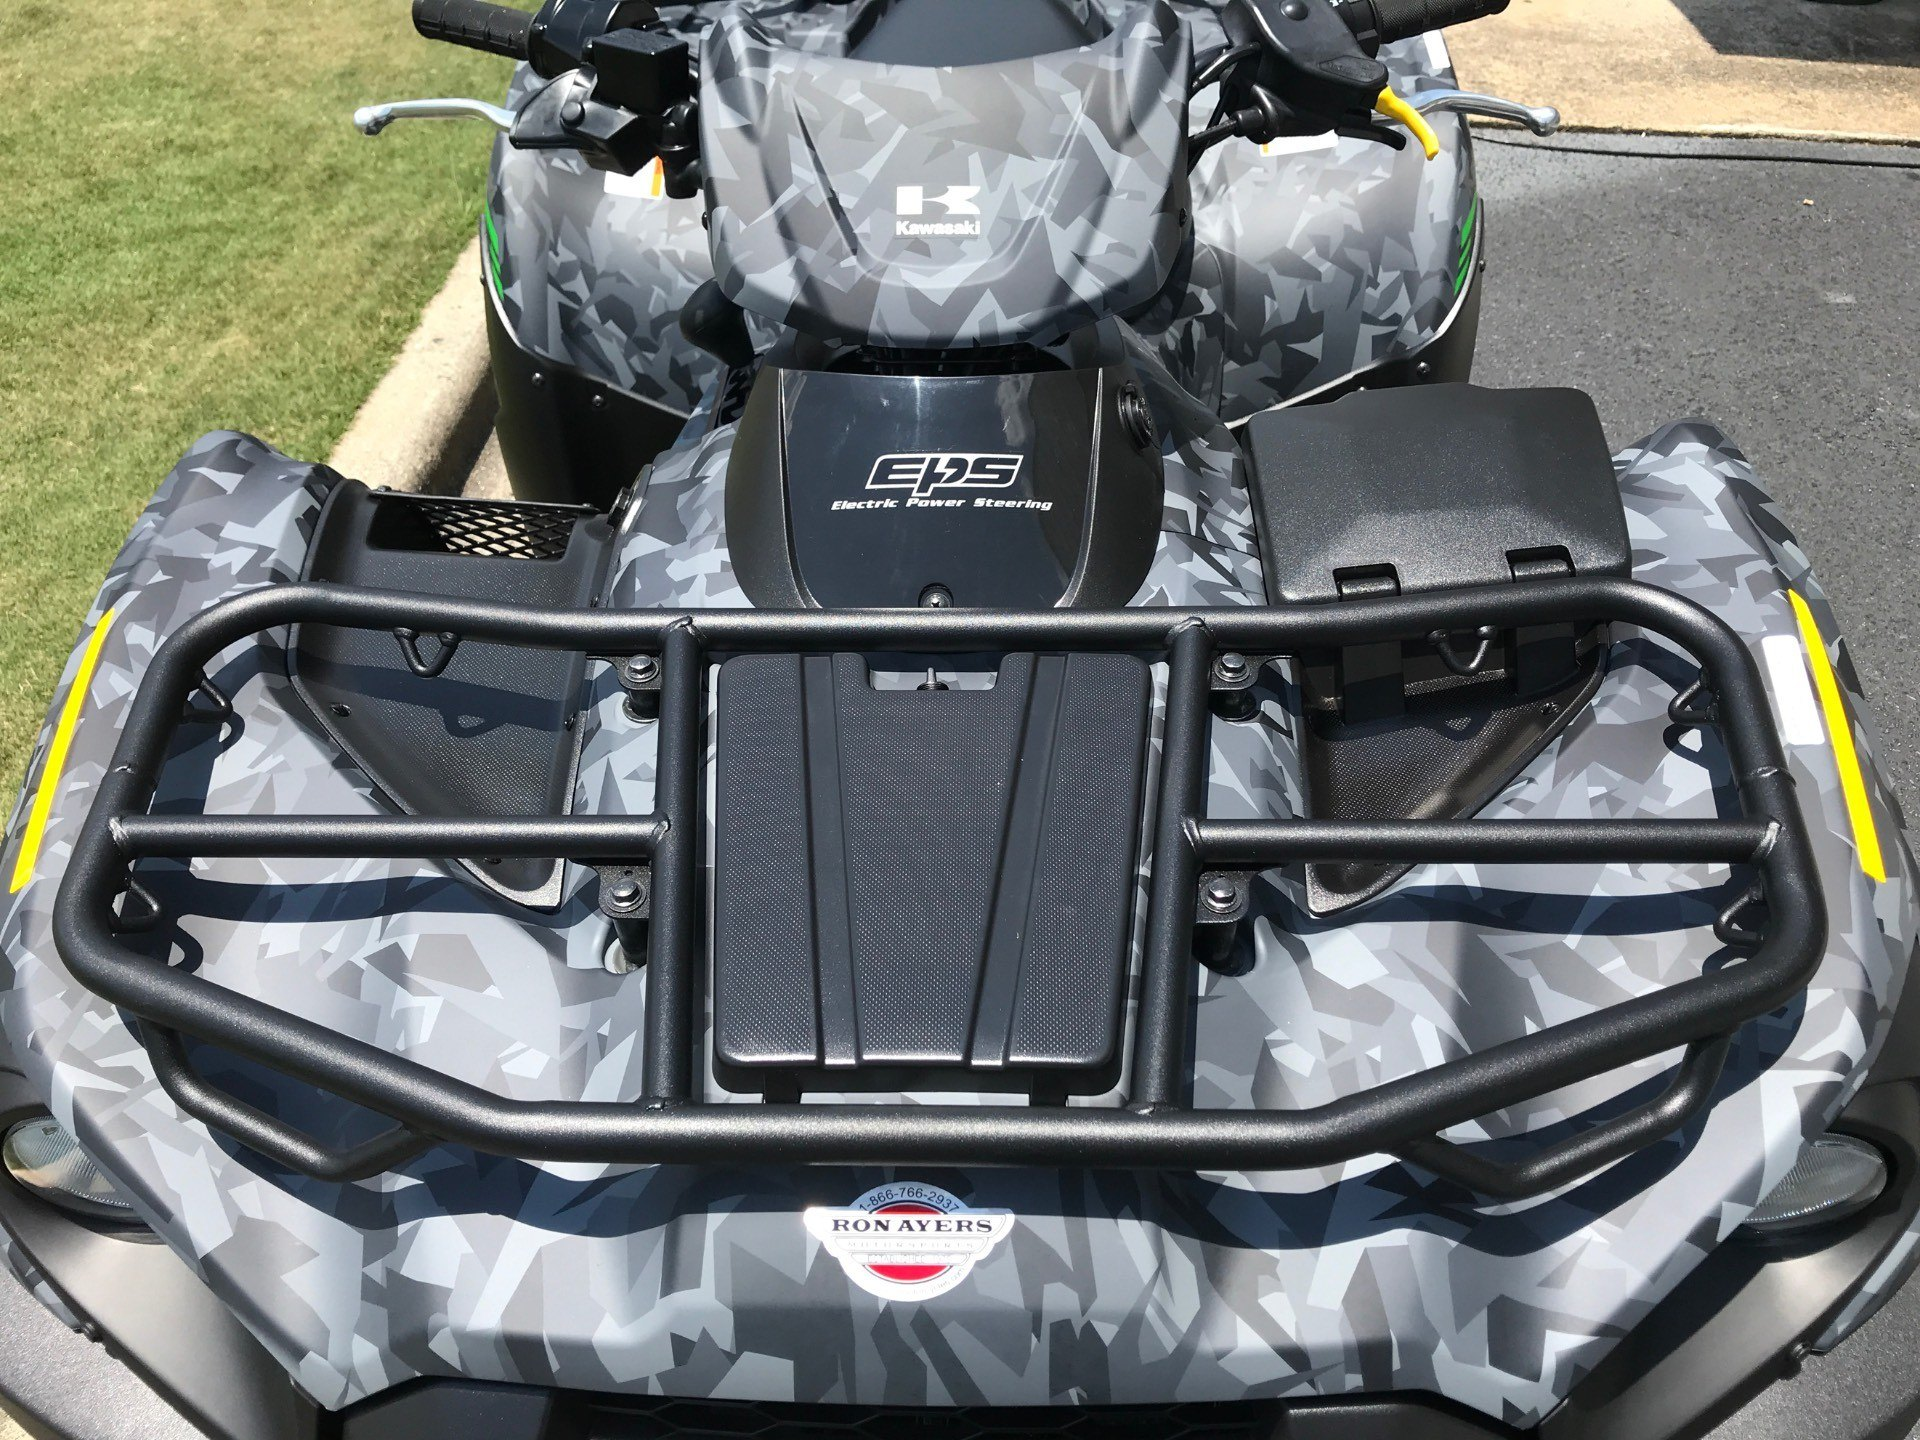 2021 Kawasaki Brute Force 750 4x4i EPS in Greenville, North Carolina - Photo 10